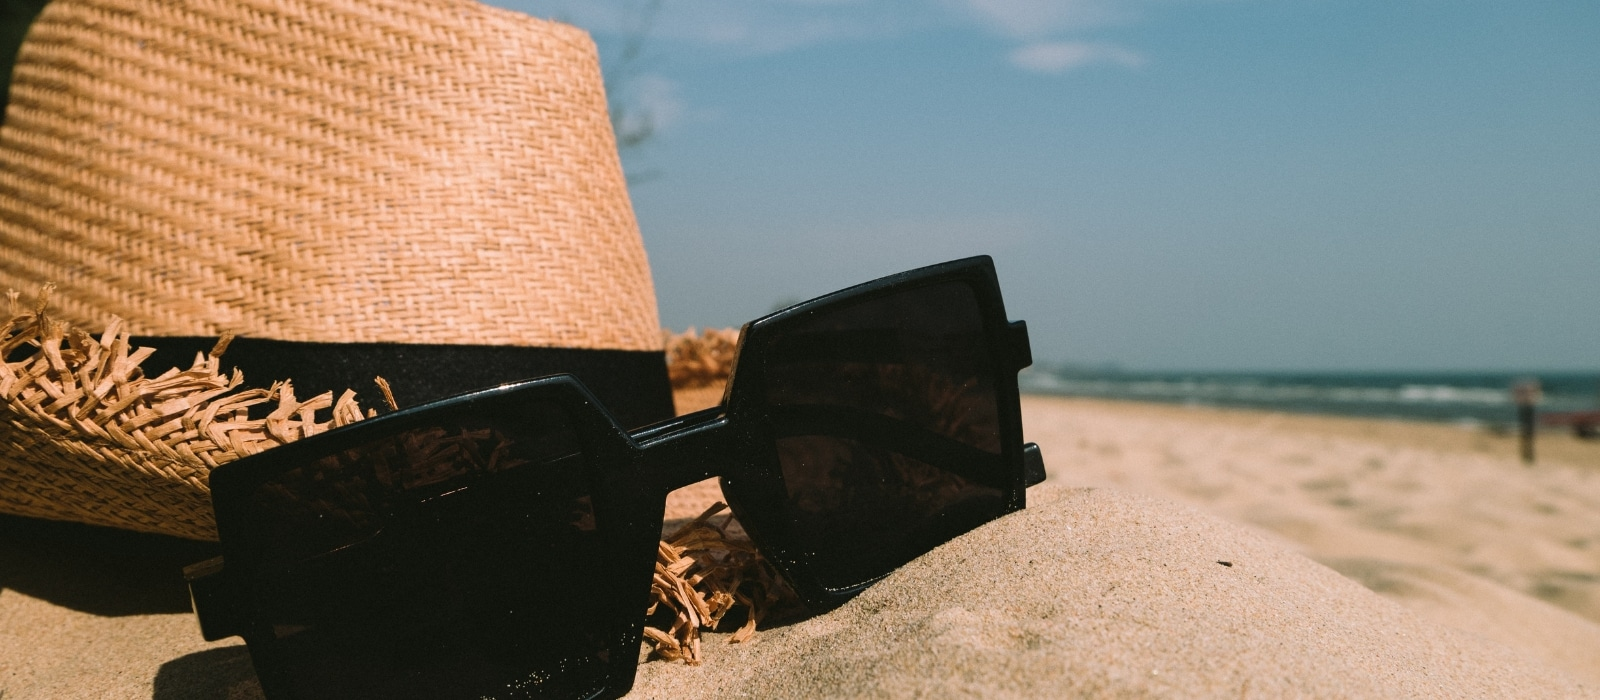 Wine-Friendly Beach & Pool Accessories| Summer Wine Accessories| Pool-Friendly Wine Accessories| Accessories for Wine and Pool Time| What to Bring to the Pool Besides Wine| #summer #accessories #wineaccessories #wine #pool&wine